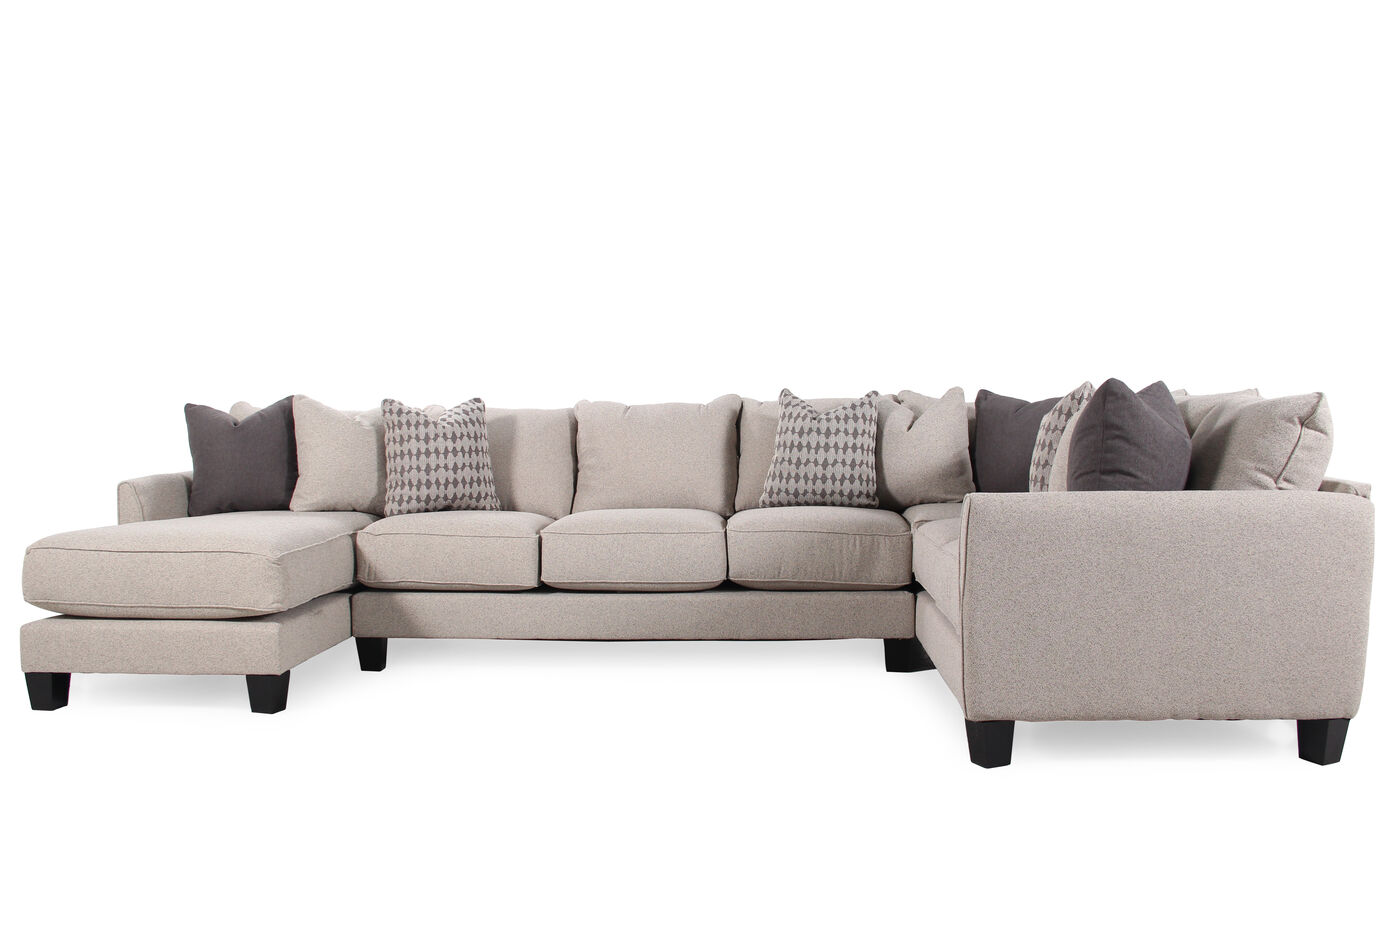 Three Piece Contemporary 159 Quot Sectional In Nutmeg Brown